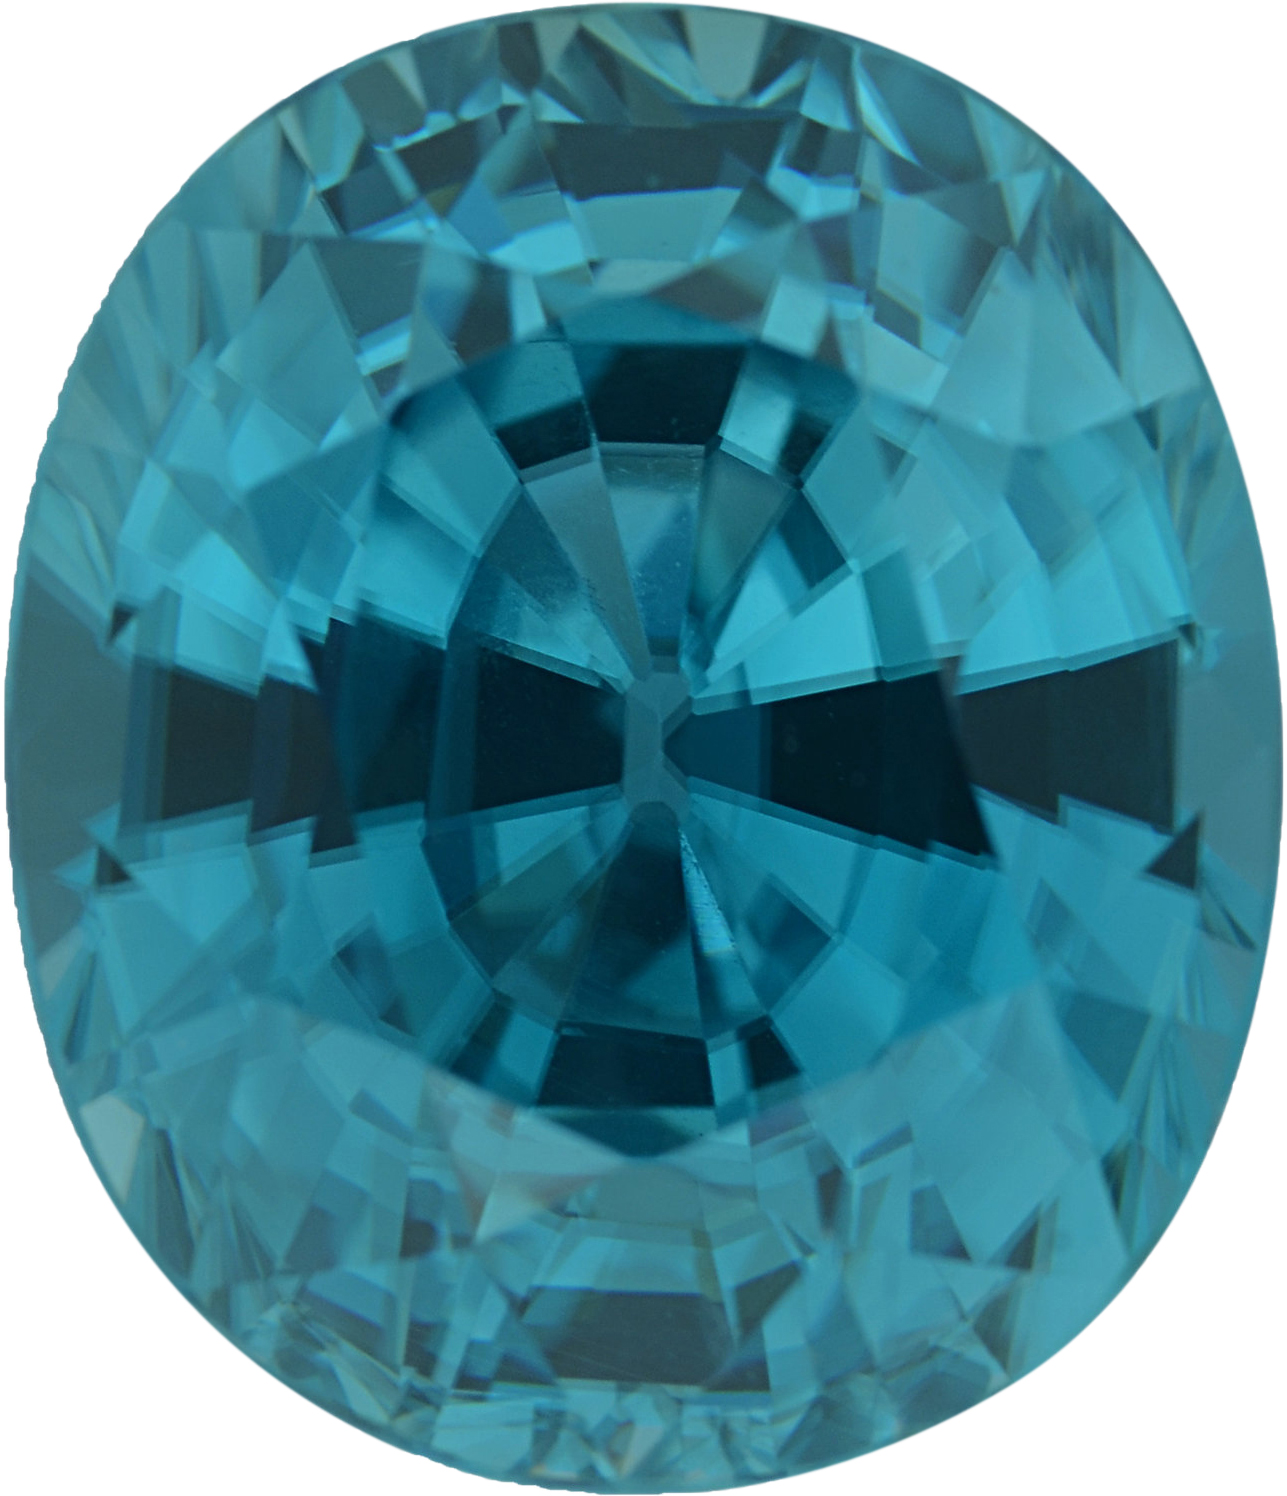 7.05 carats Oval Cut Genuine Zircon Gem, 11.03 x 9.03 mm